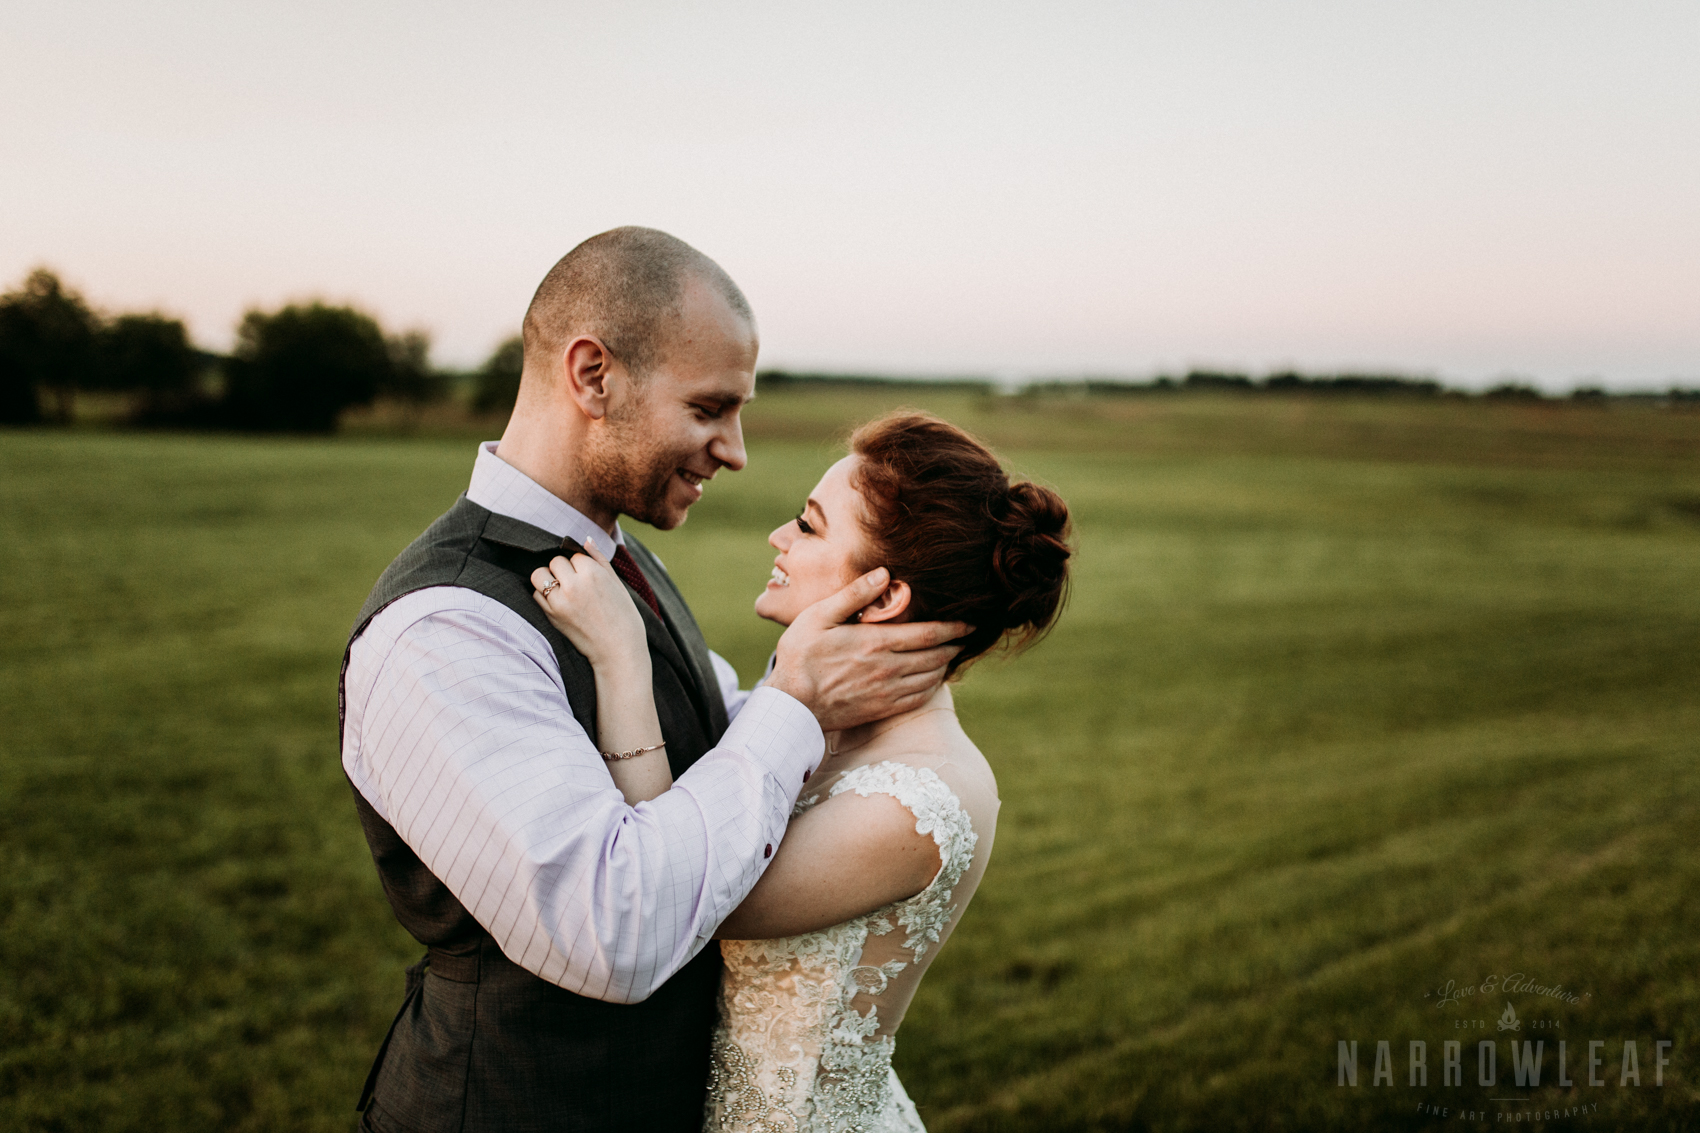 bride-groom-romantic-sunset-photos-rustys-hitching-post-event-center-new-richmond-wi-58.jpg